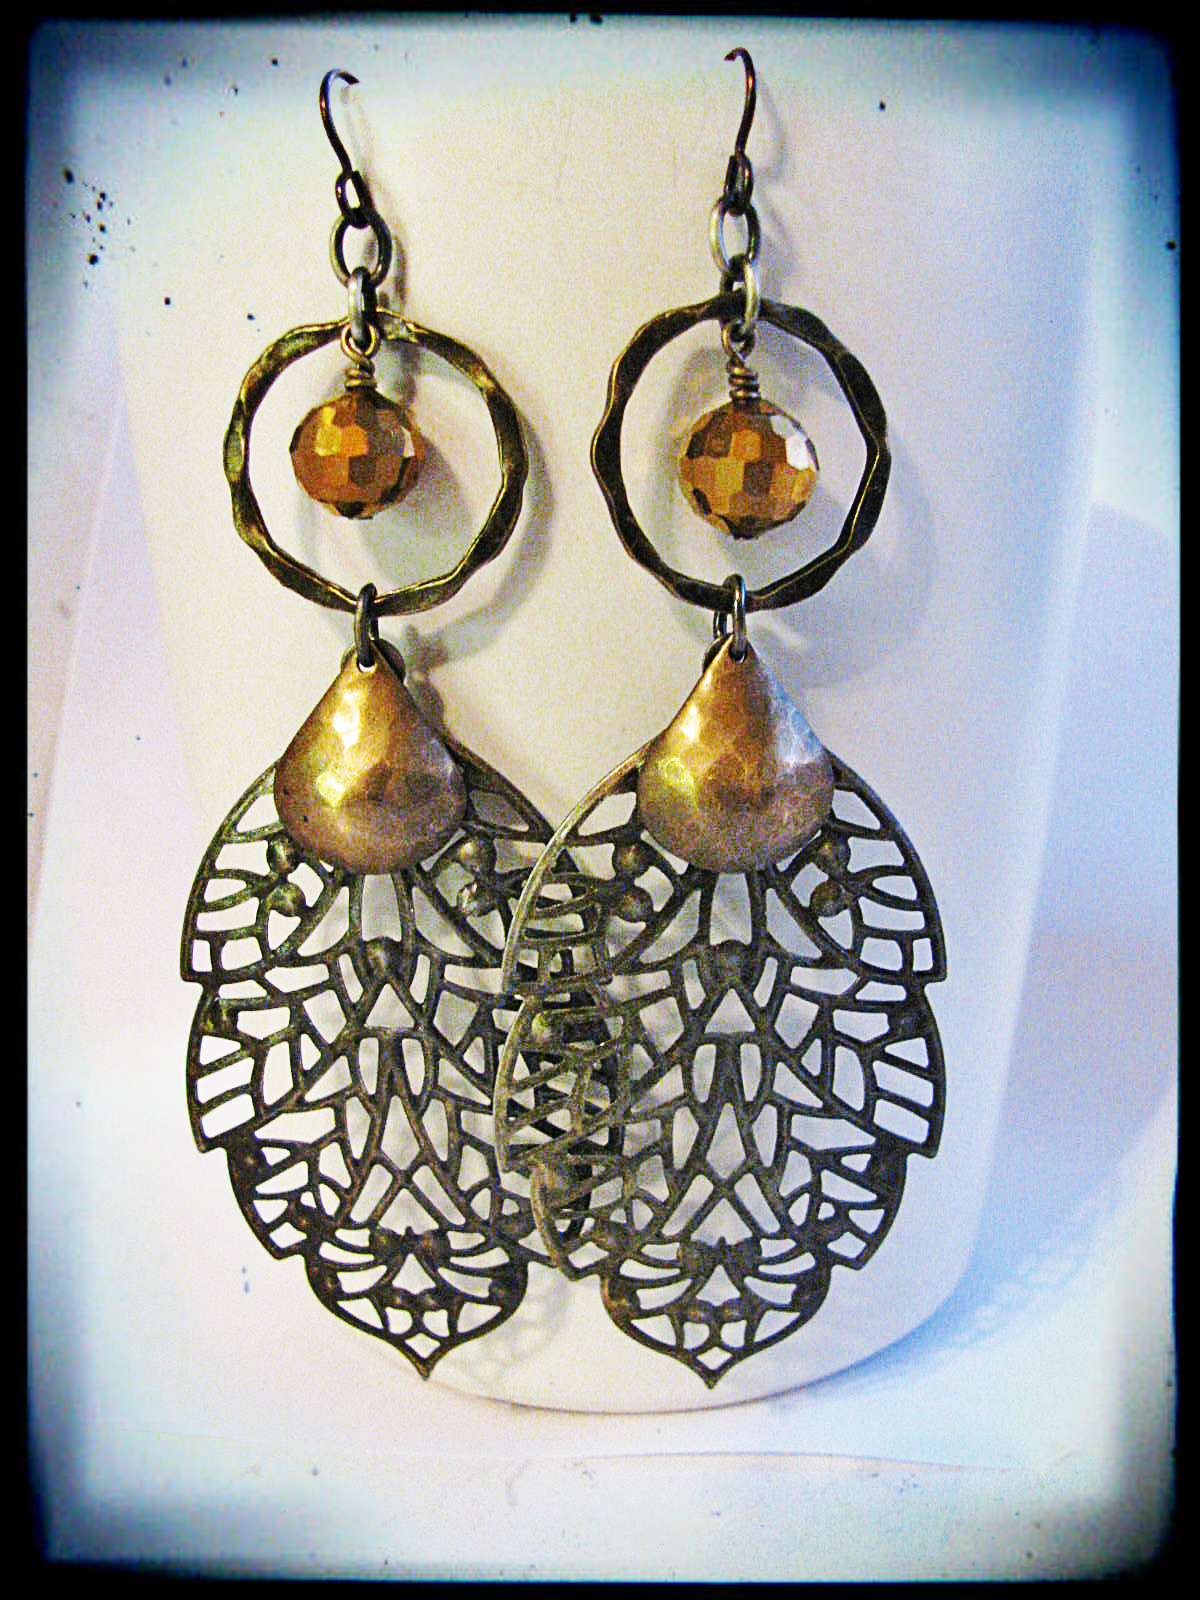 These earrings were made with jumbo brass filigree leaves. And though they are large, they are quite lightweight.